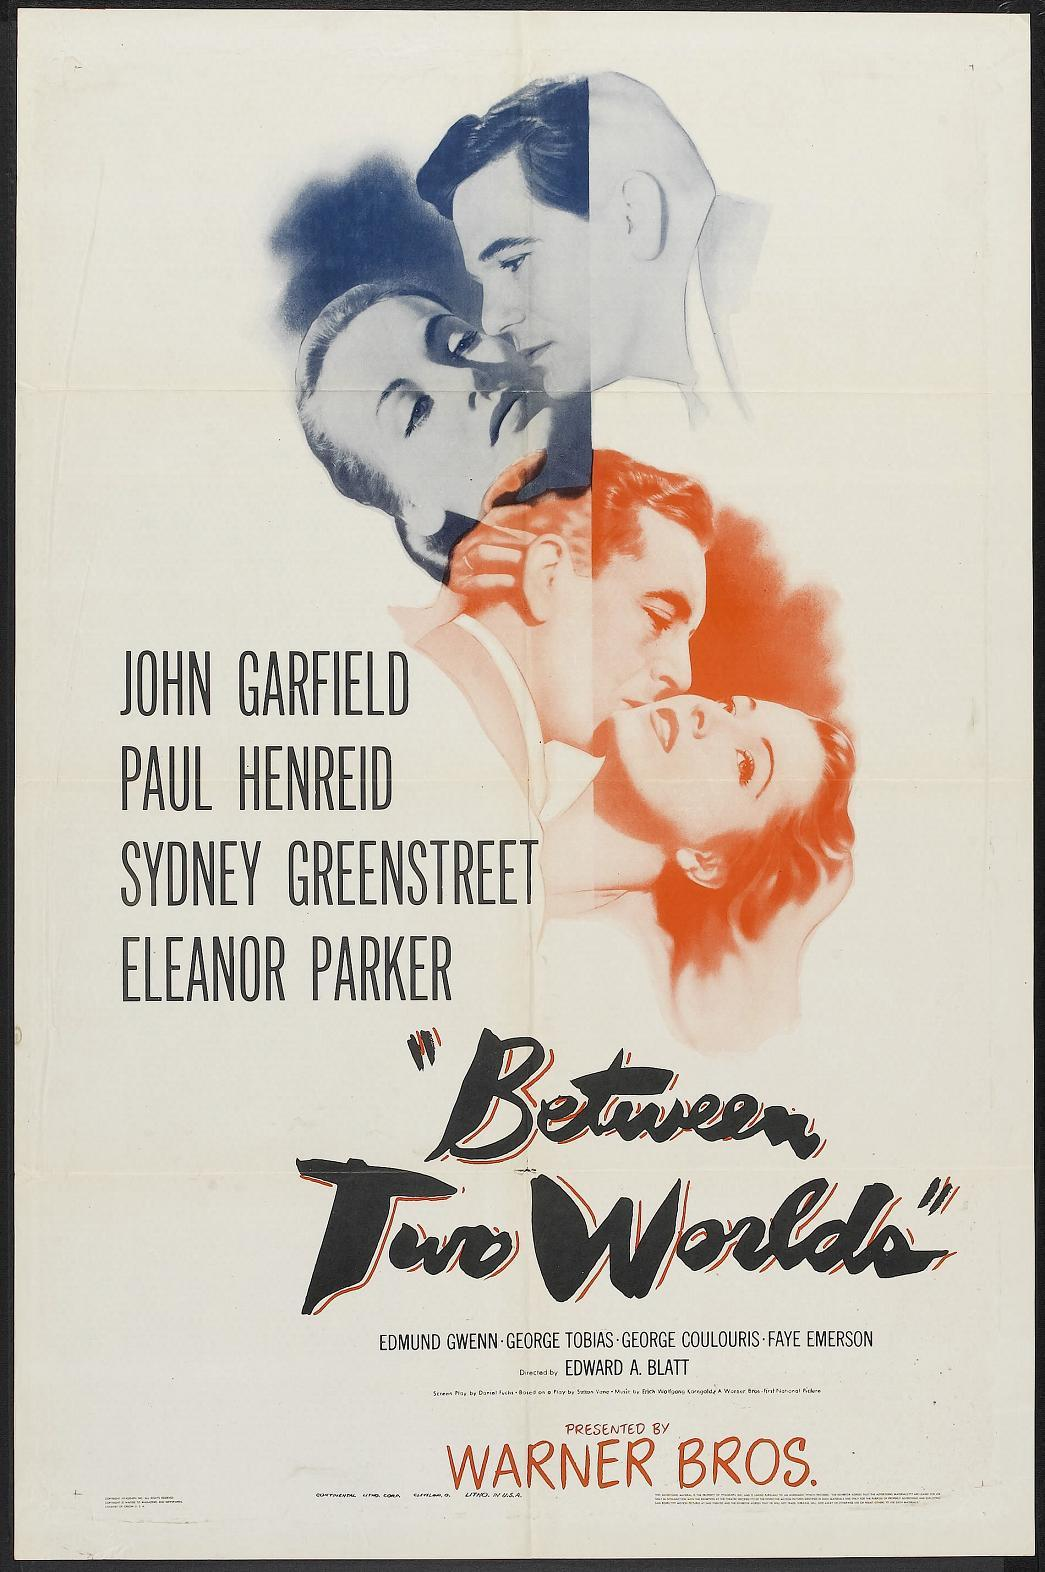 38004547 Edward A. Blatt   Between Two Worlds (1944)